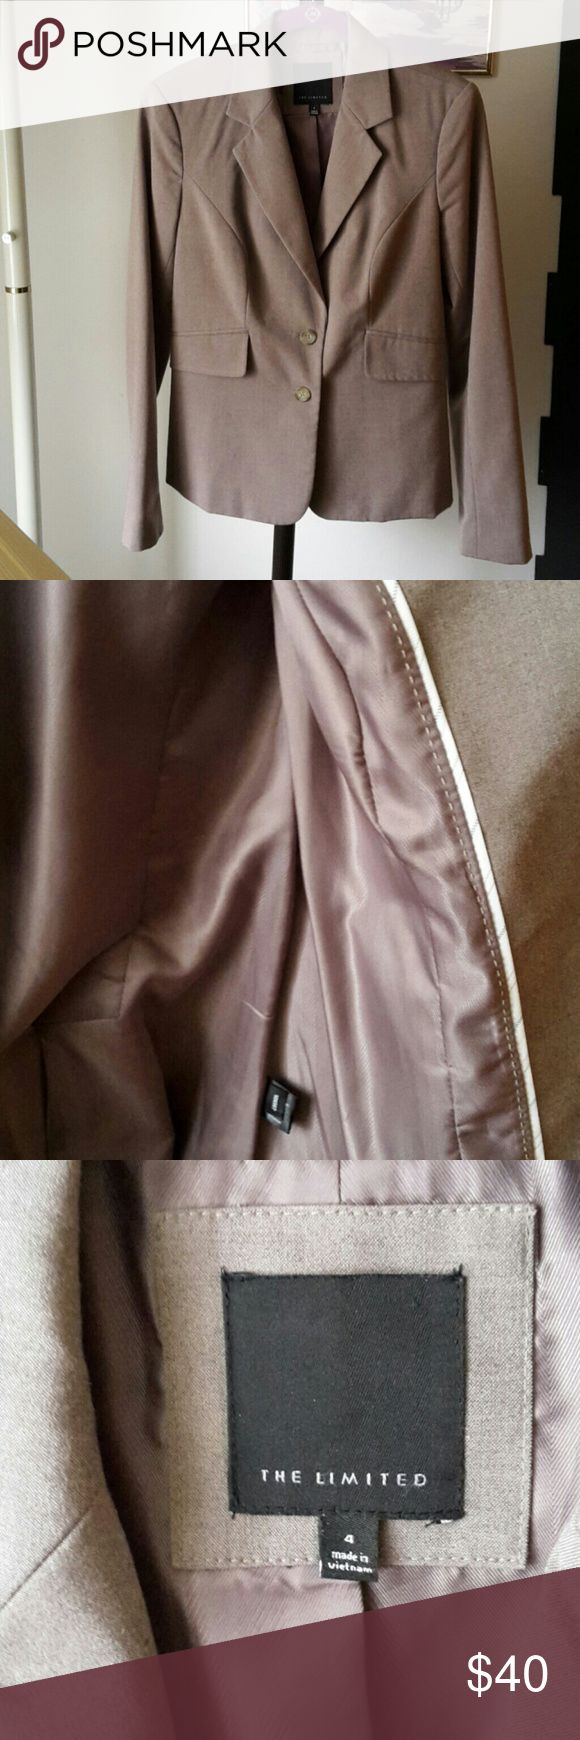 THE LIMITED BLAZER NWOT! Great addition to your career wear wardrobe. Back vents still sewn shut. Lovely. The Limited  Jackets & Coats Blazers